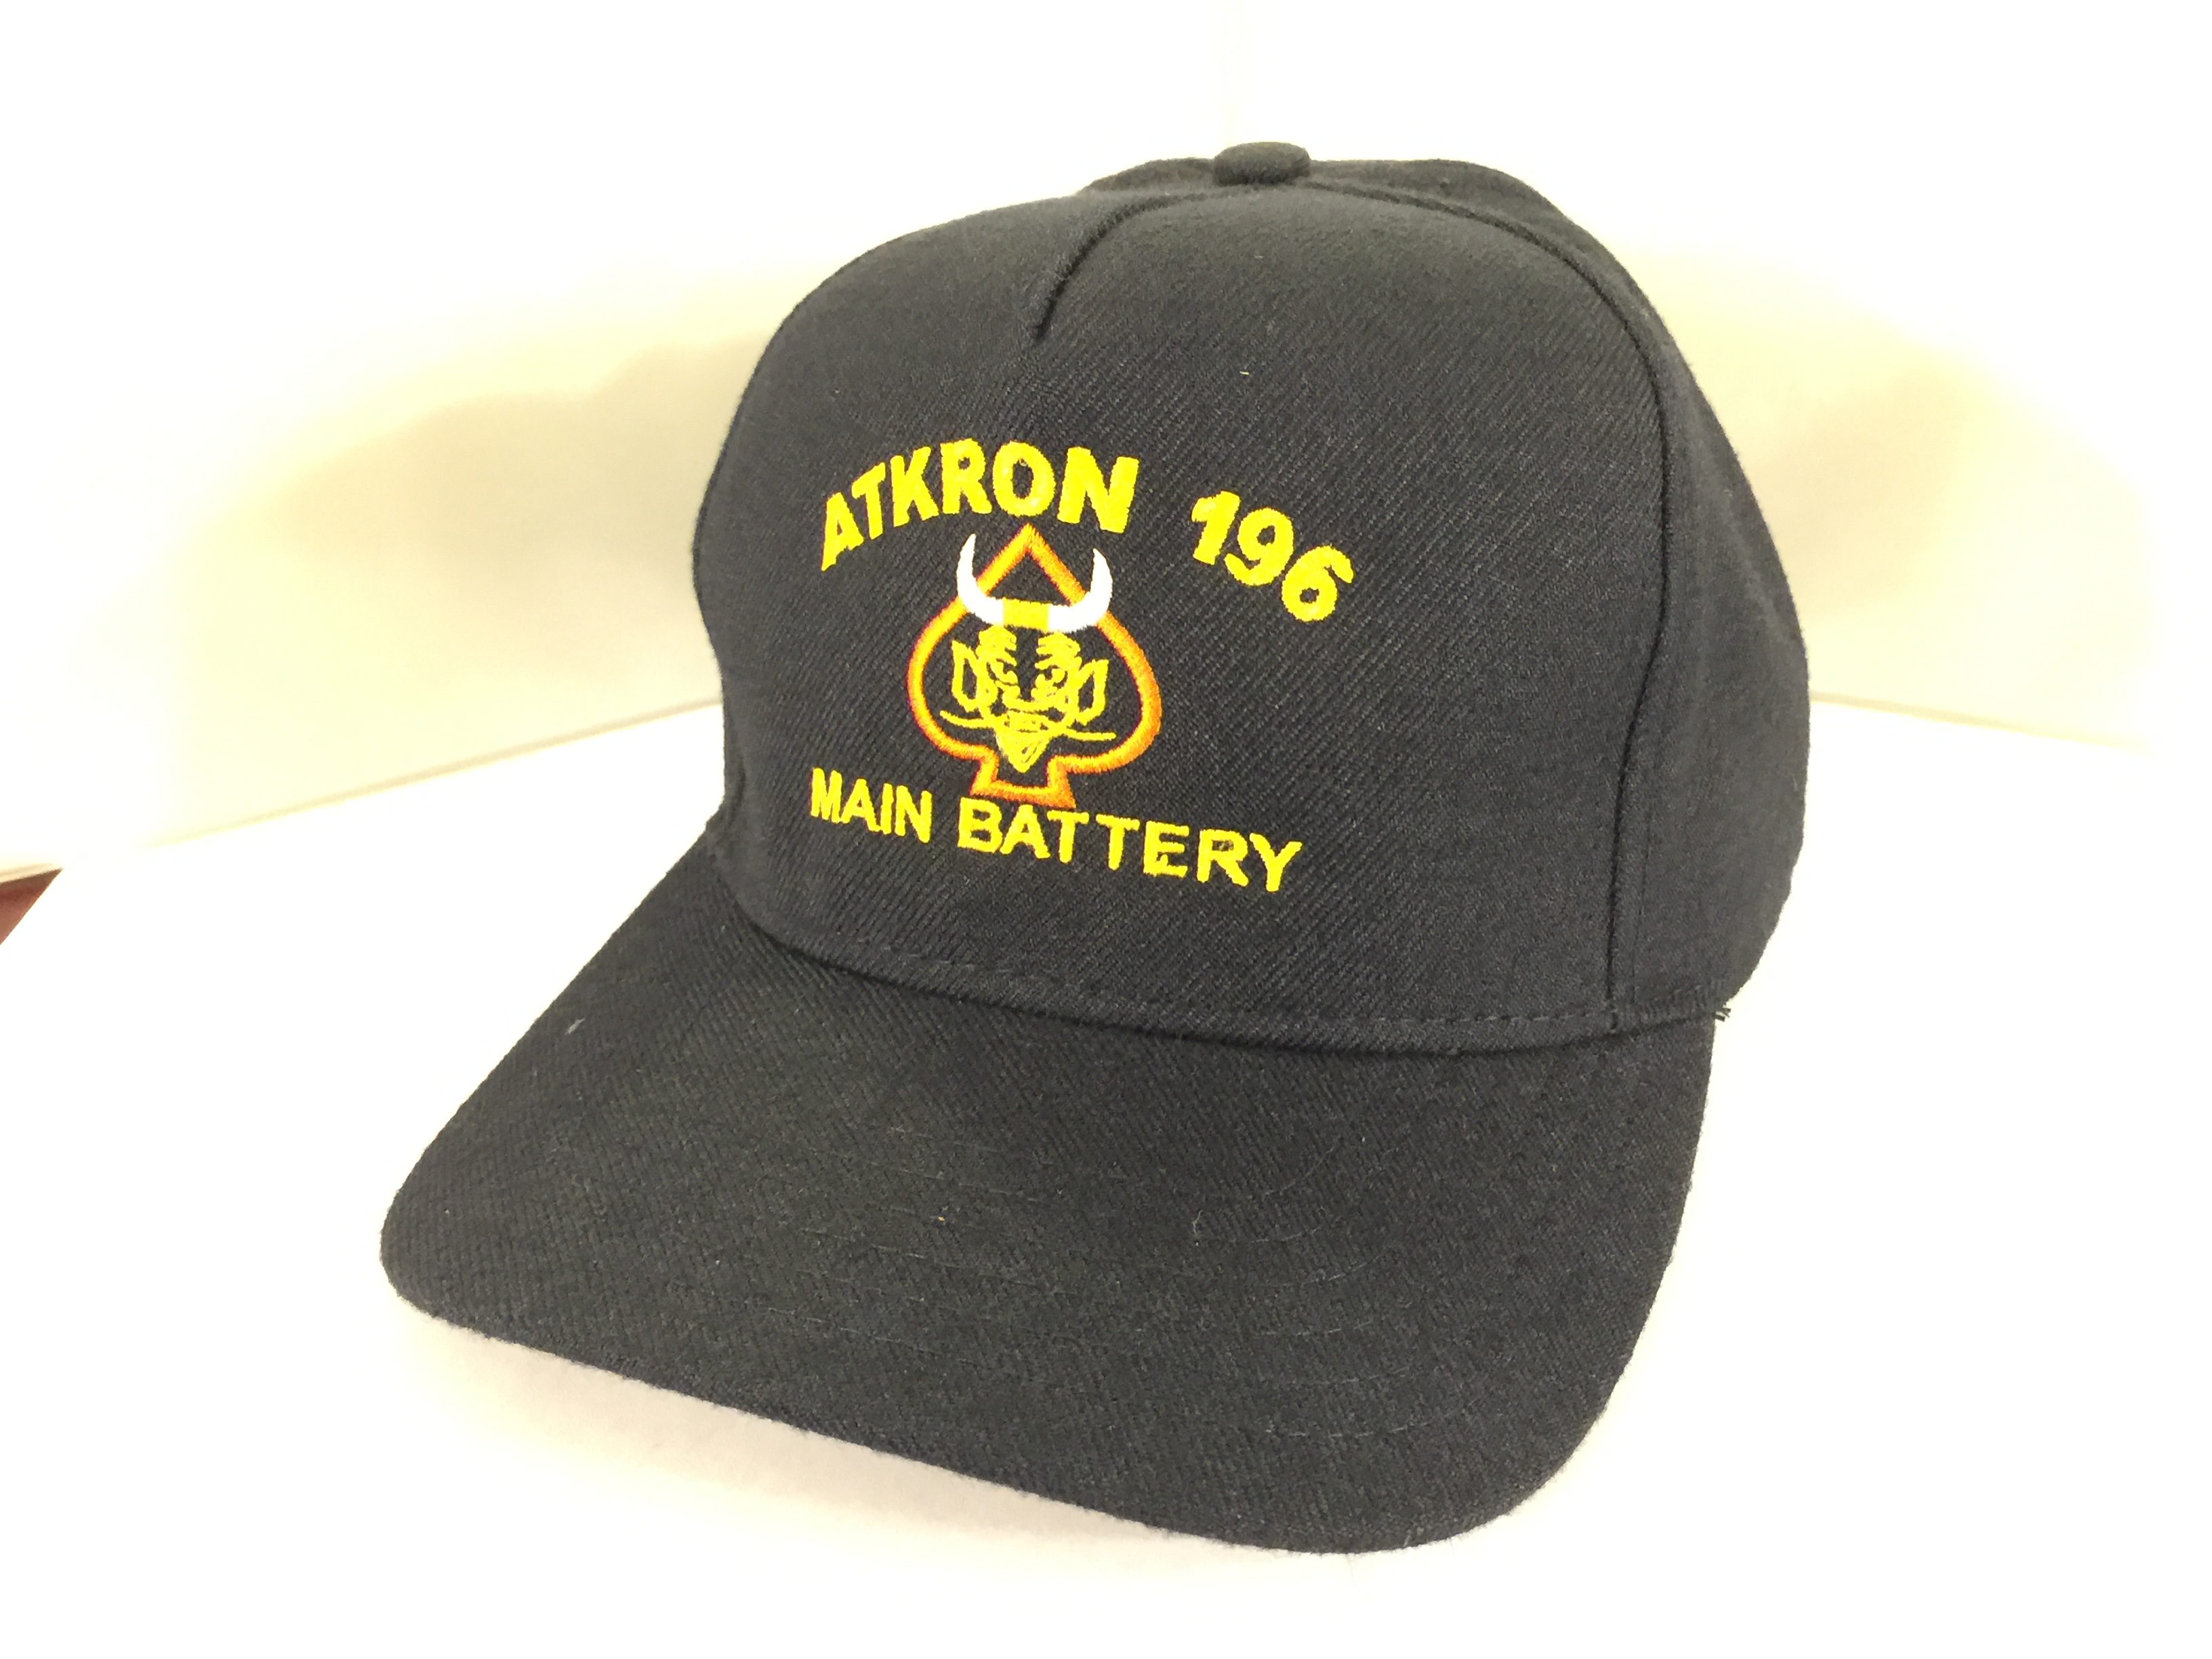 ATKRON-196 (Direct embroidery-Dark Blue)